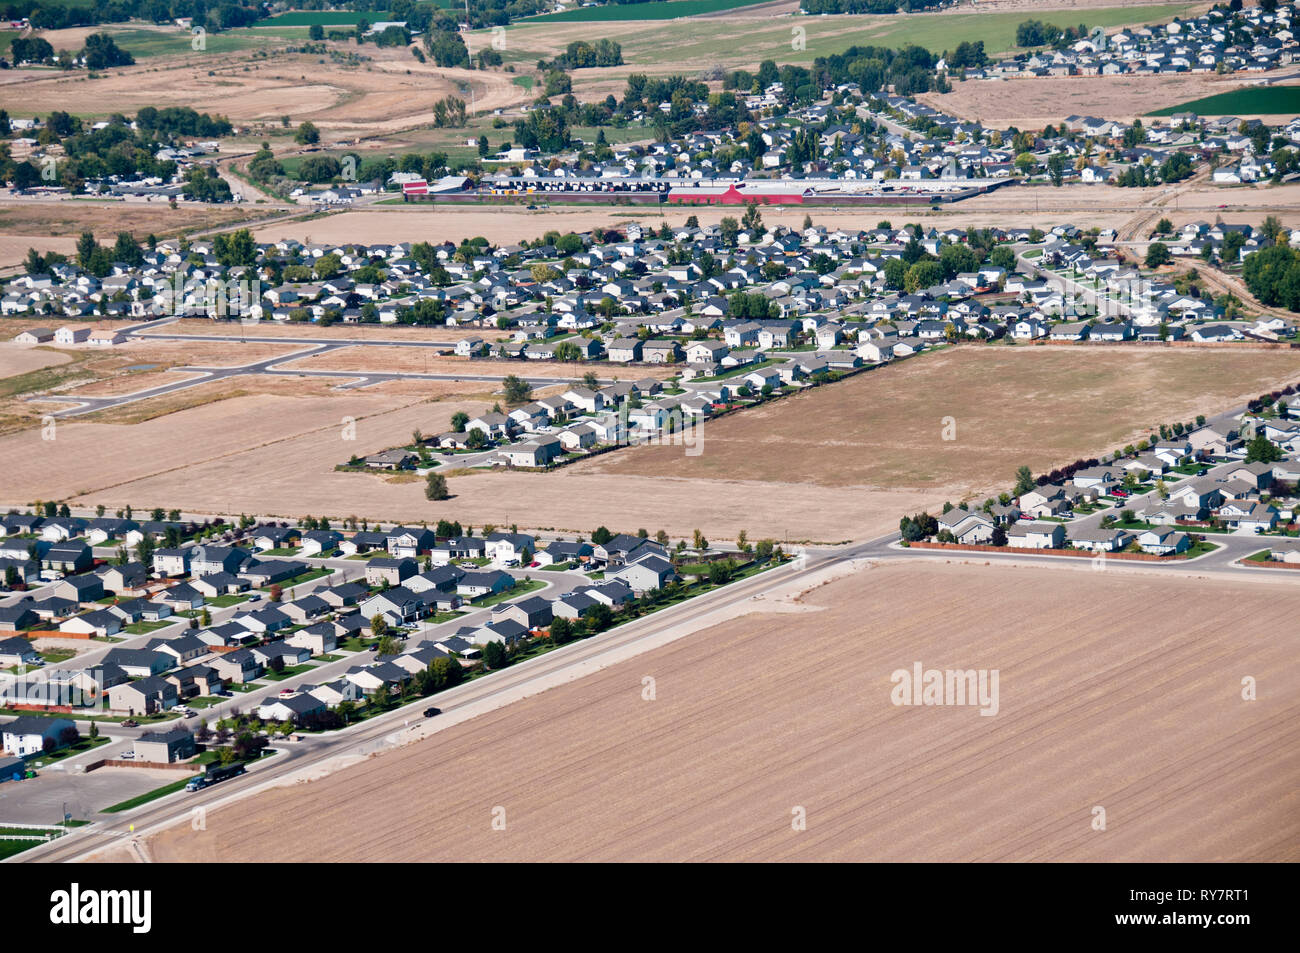 Subdivisions encroaching on farmland near Boise, Idaho - Stock Image